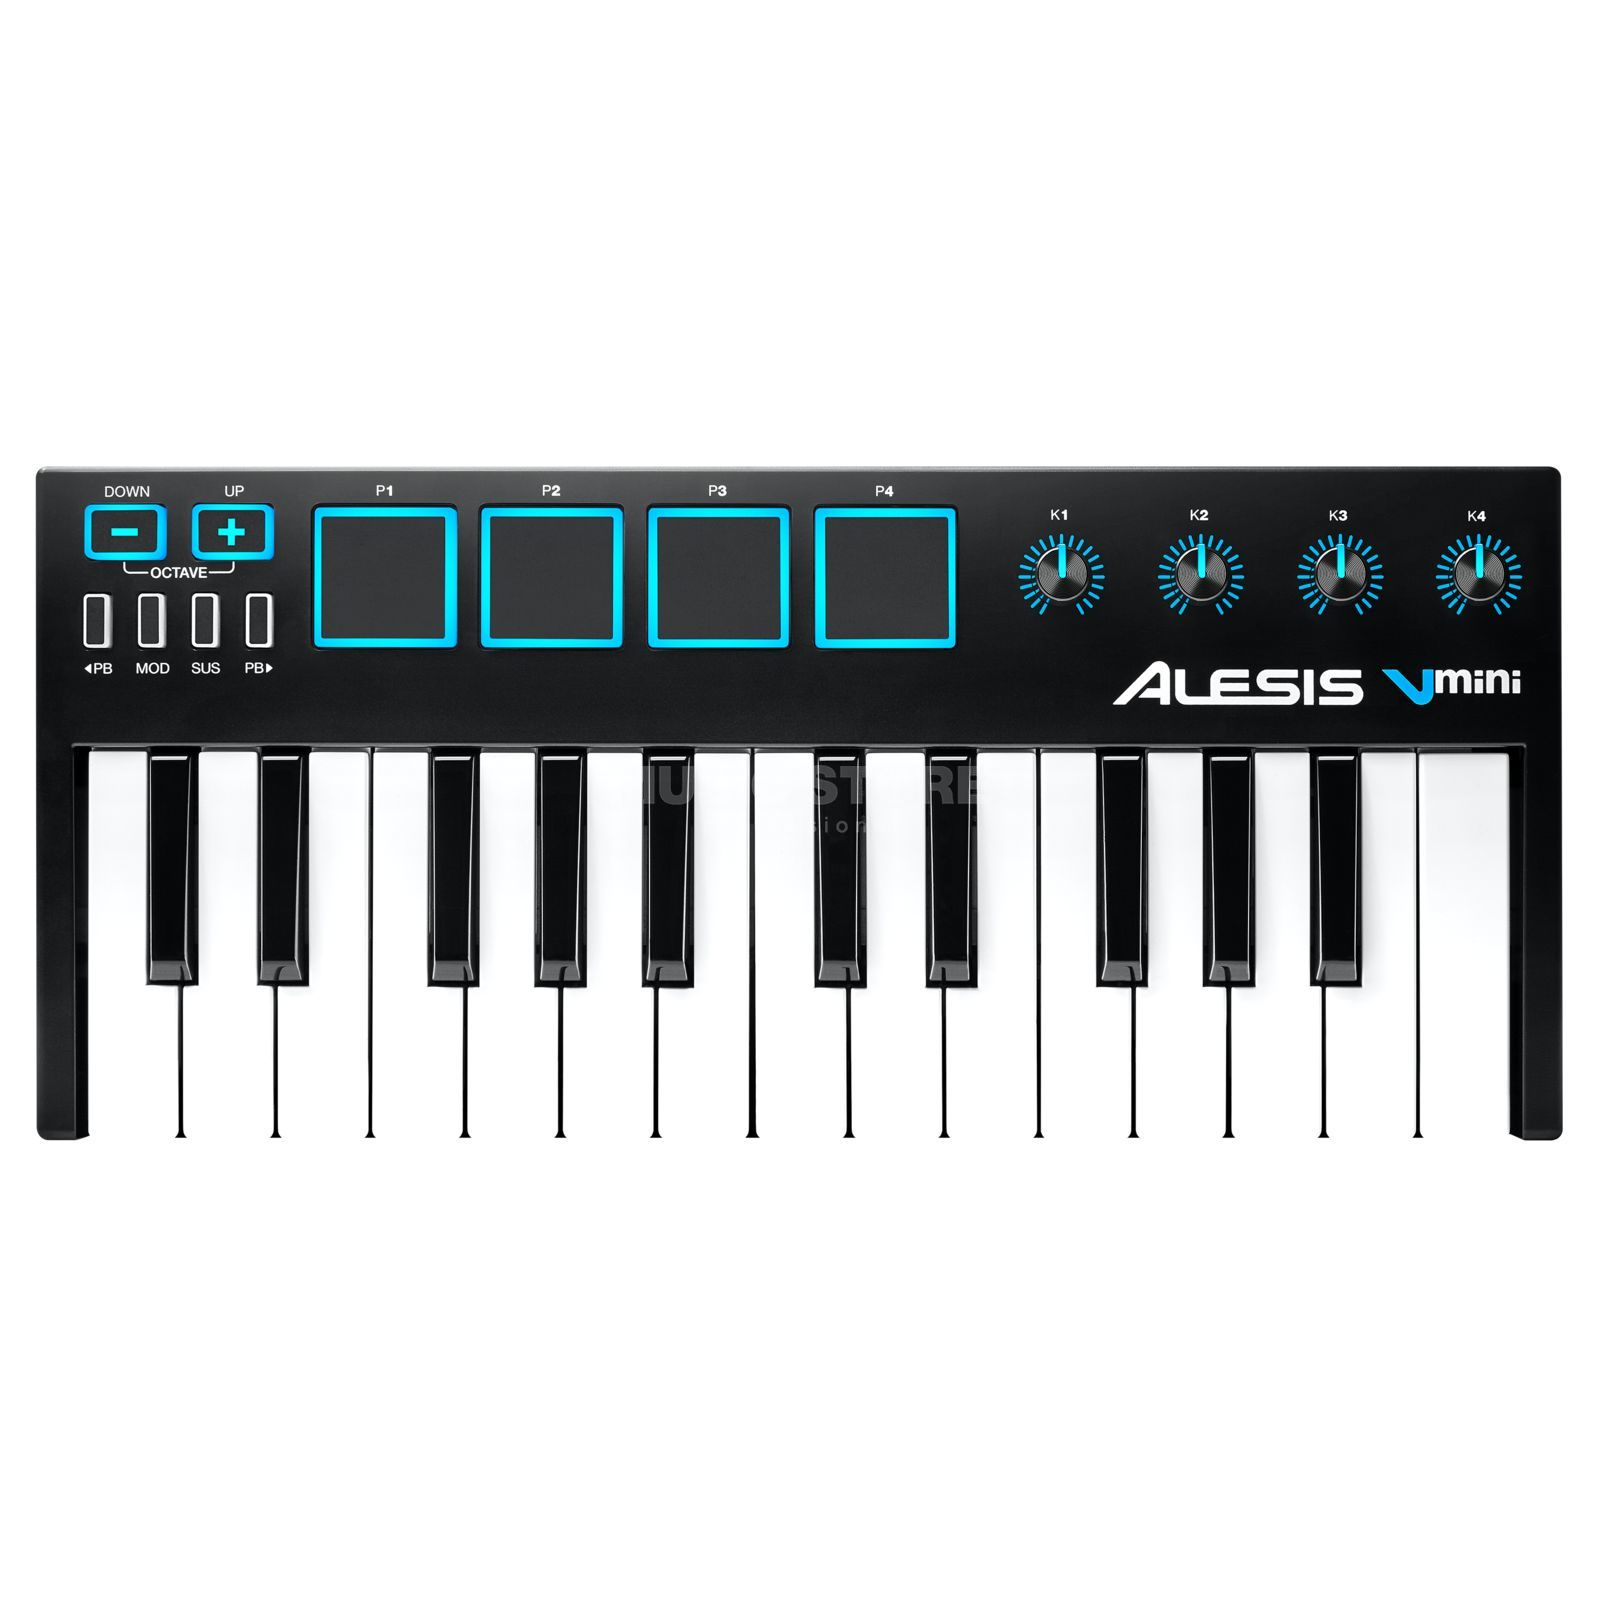 Alesis V Mini kompaktes MIDI-Keyboard Product Image